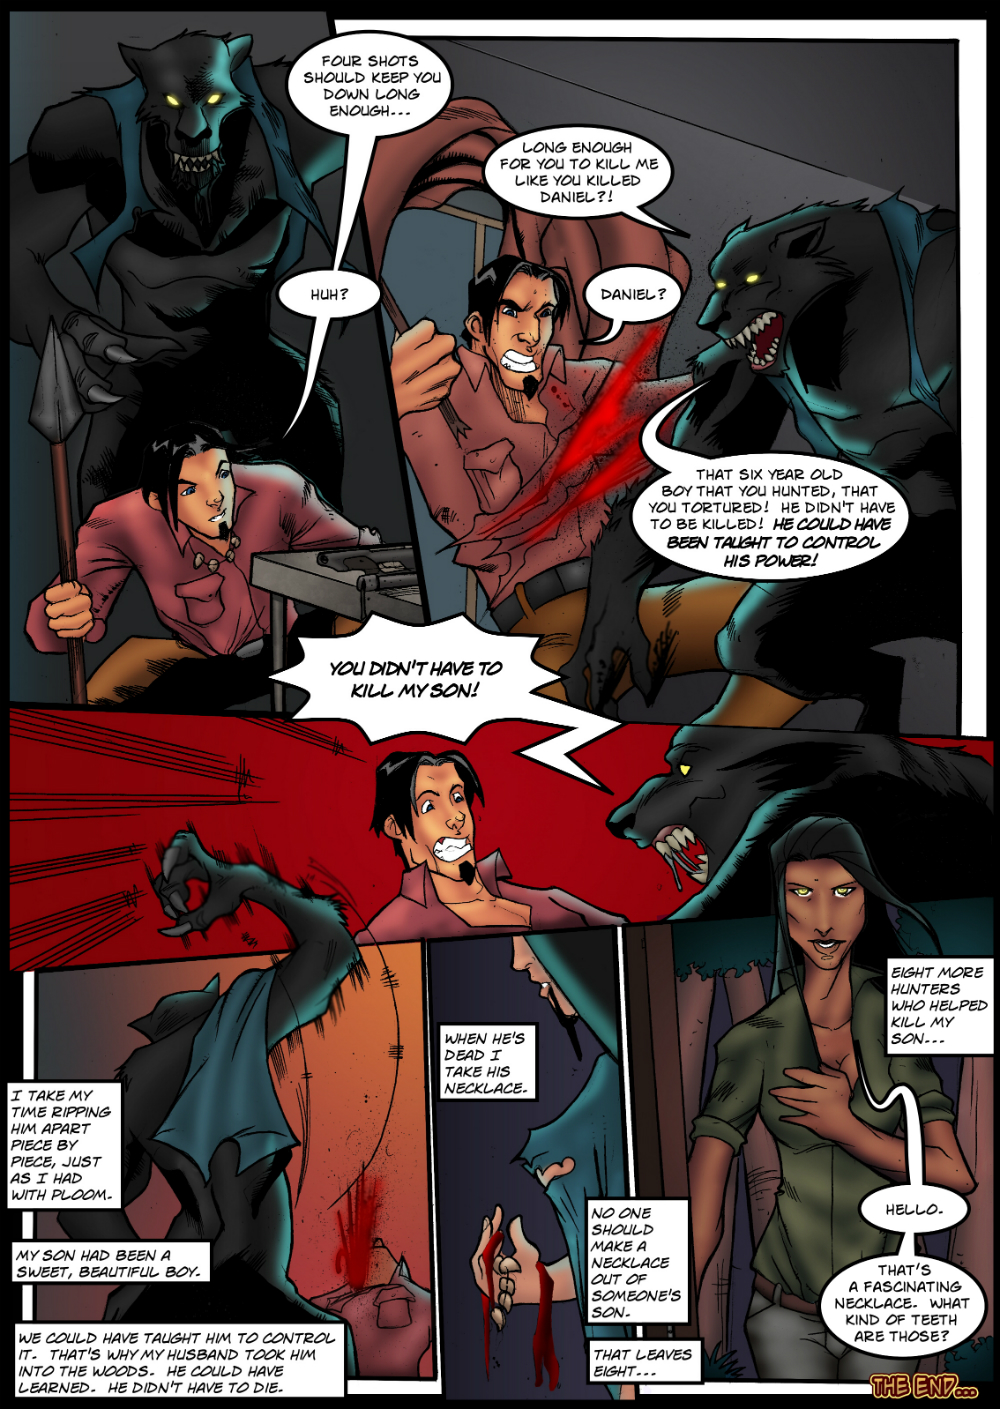 TROPHIES page 8 - story 16